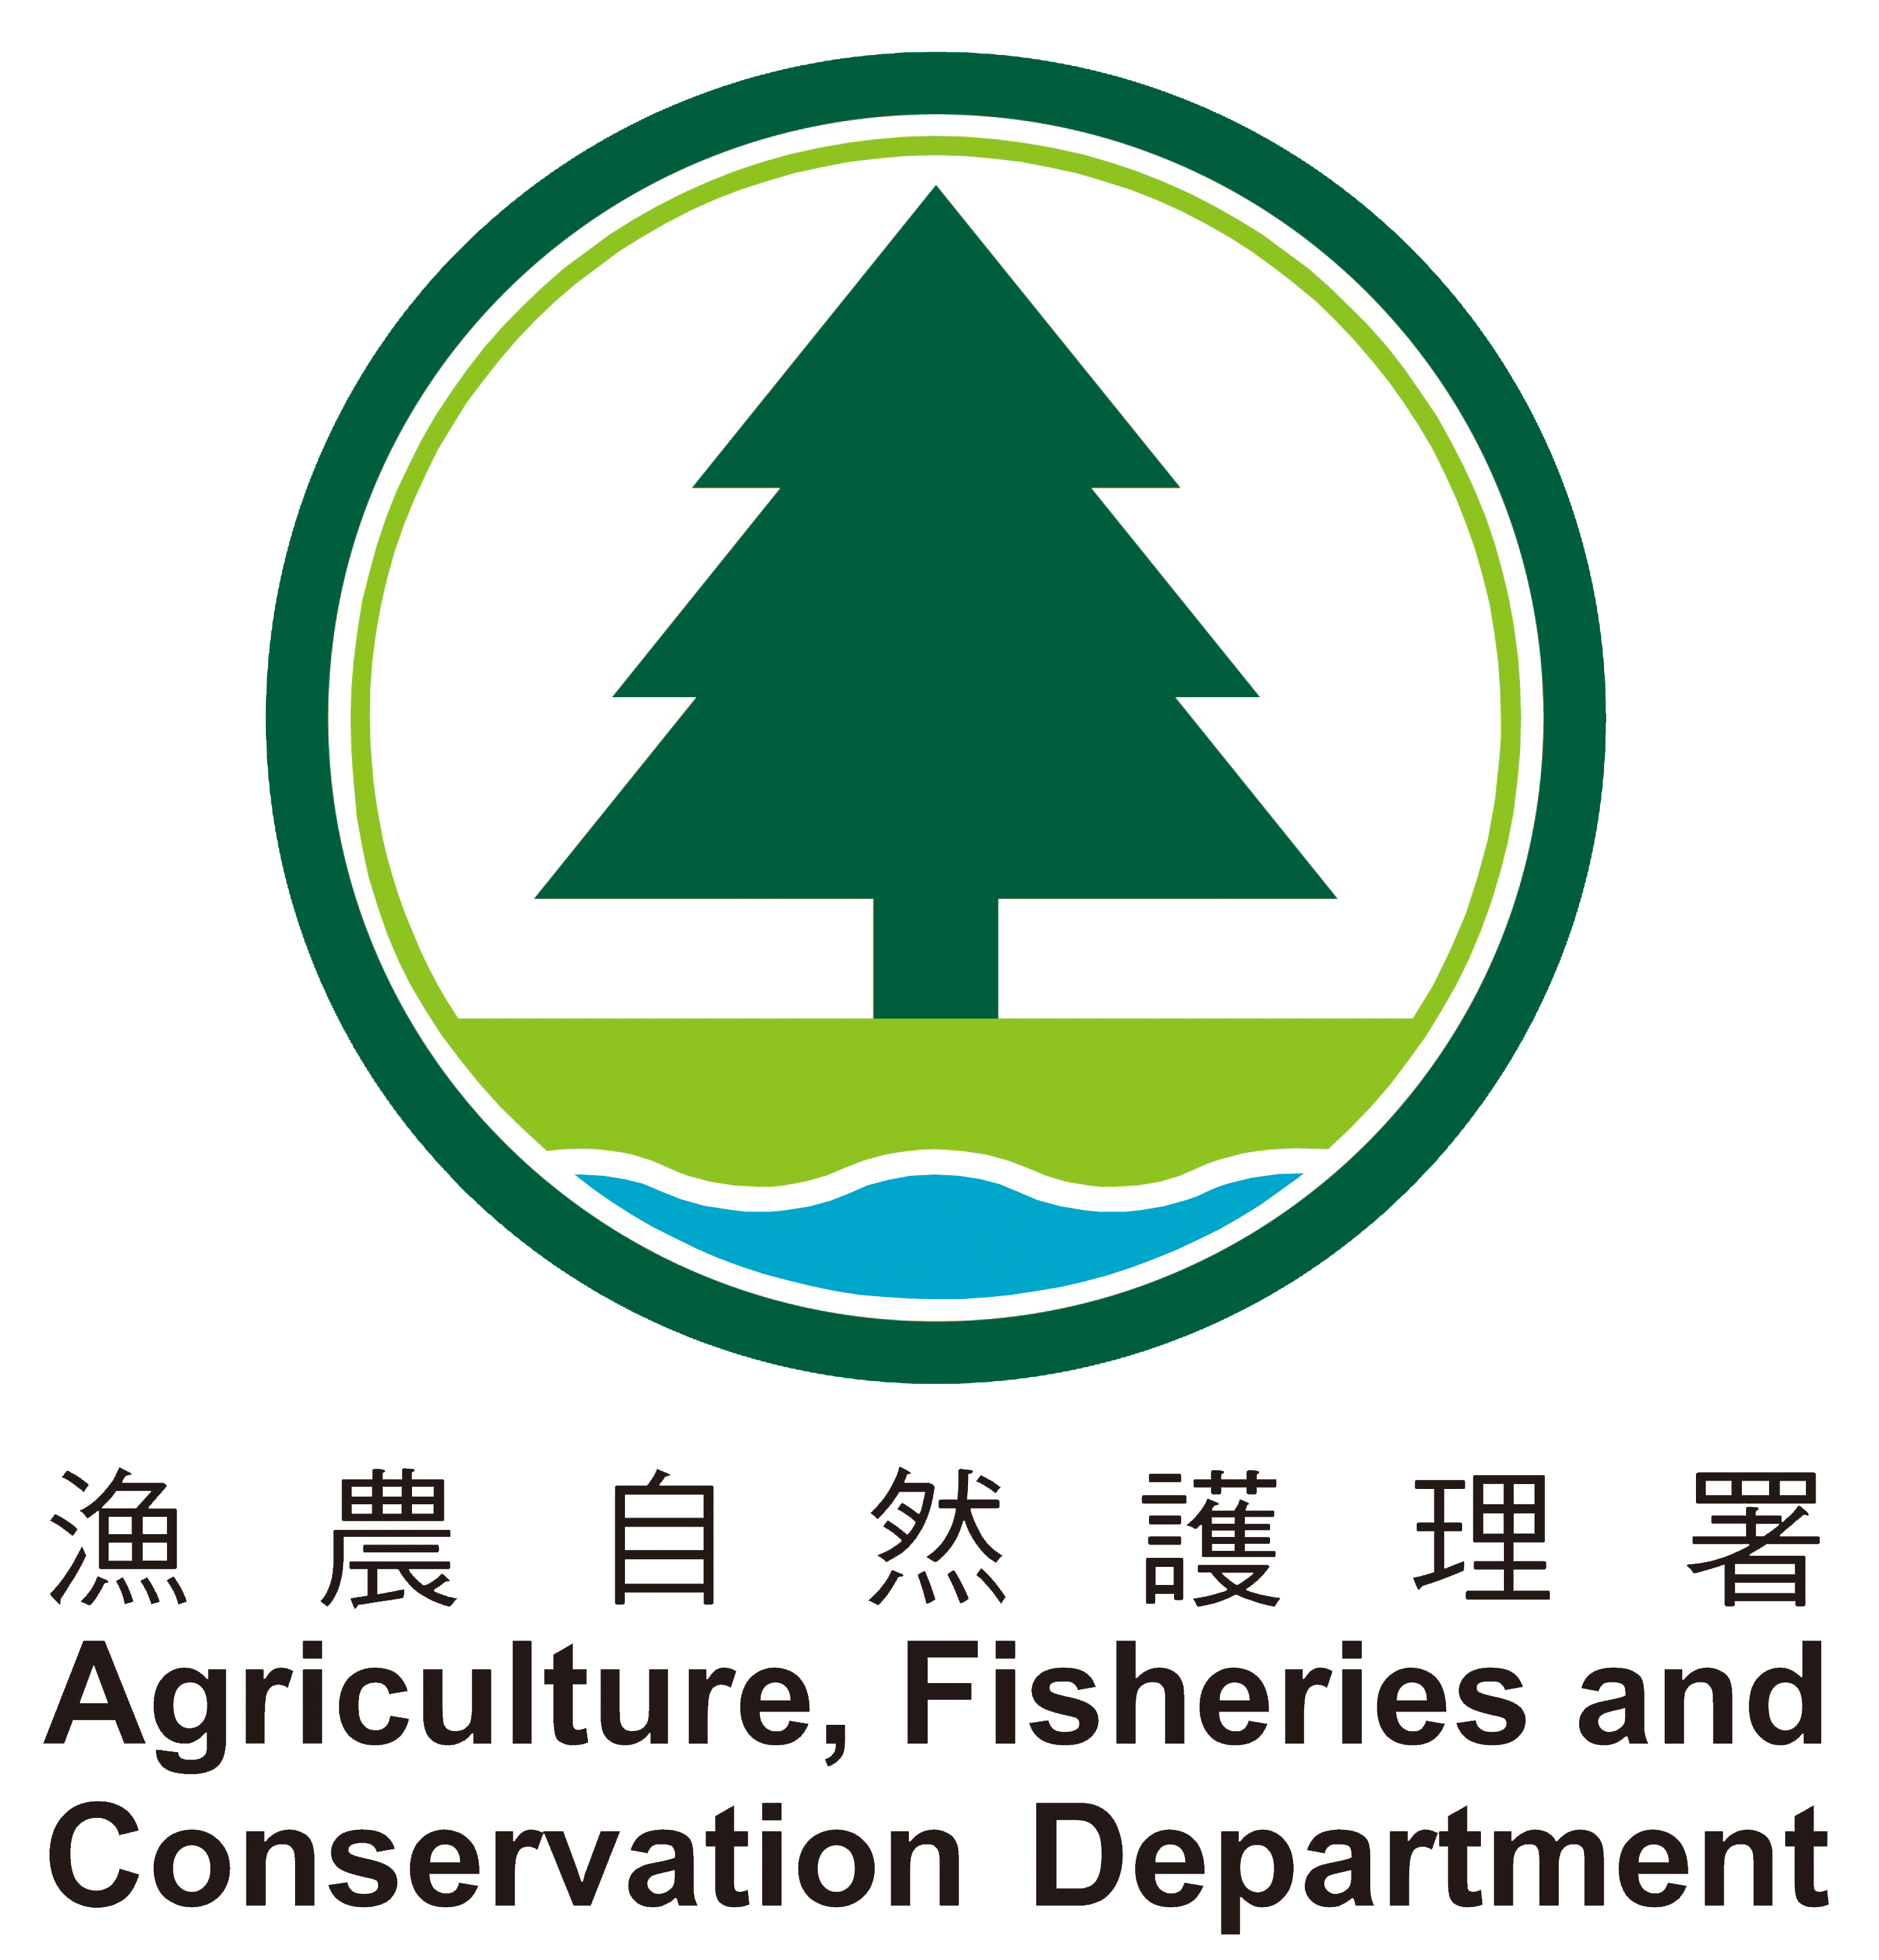 Agriculture, Fisheries and Conservation Department Logo